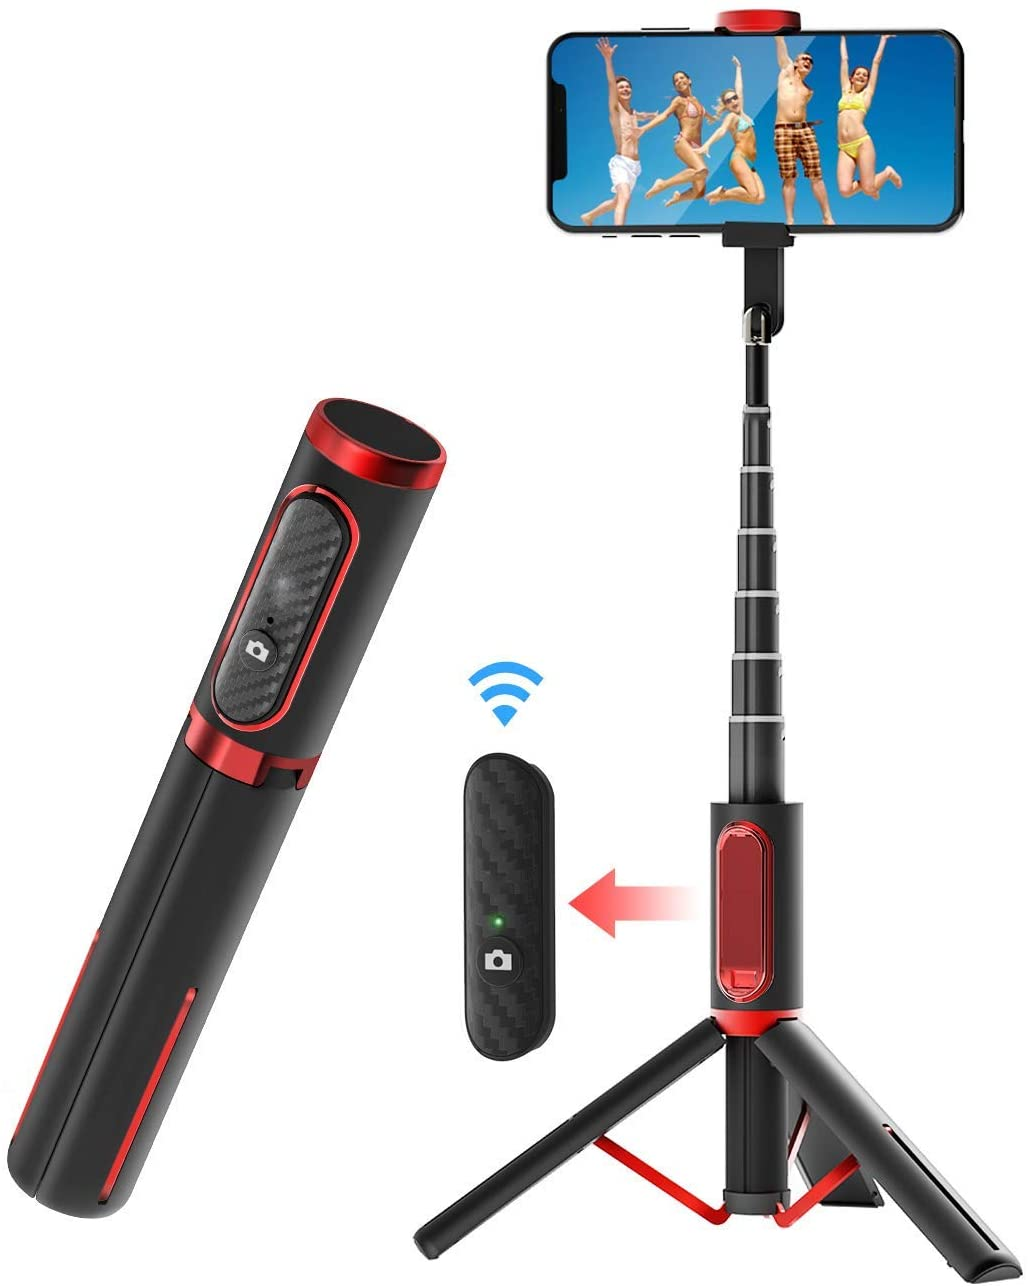 AWZSDF Bluetooth Selfie Stick, Lightweight Aluminum All in One Extendable Selfie Stick Tripod with Wireless Remote for iPhone Xs MAX/XS/XR/X/8/8P/7/7P/6s/6, Samsung Galaxy S10/S9/S8, Huawei, More